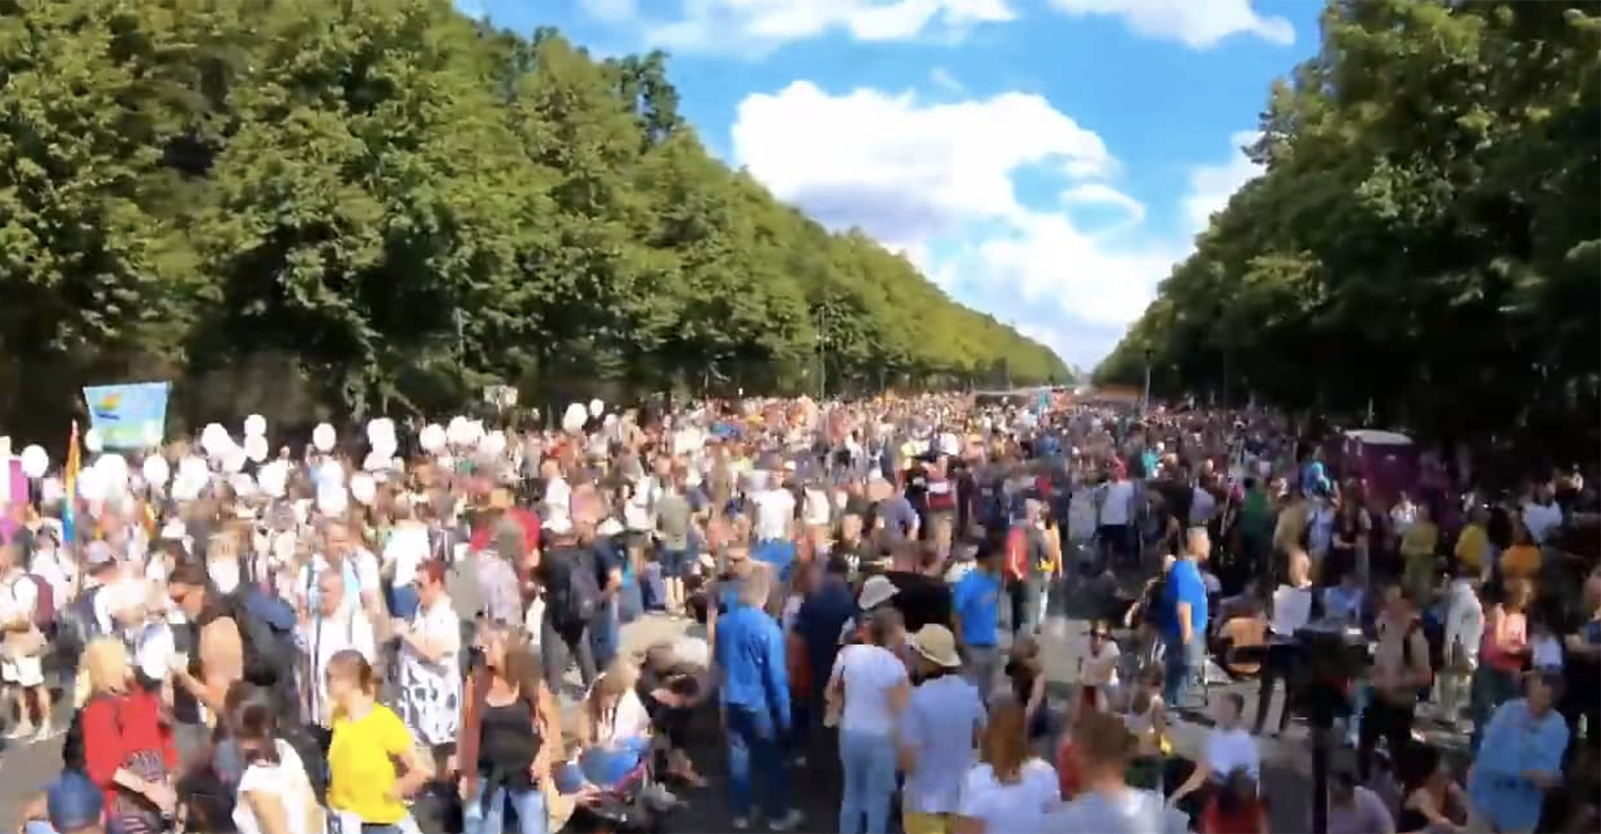 1.3 Millions People for Freedom In Berlin in August 29, 2020 (Germany)